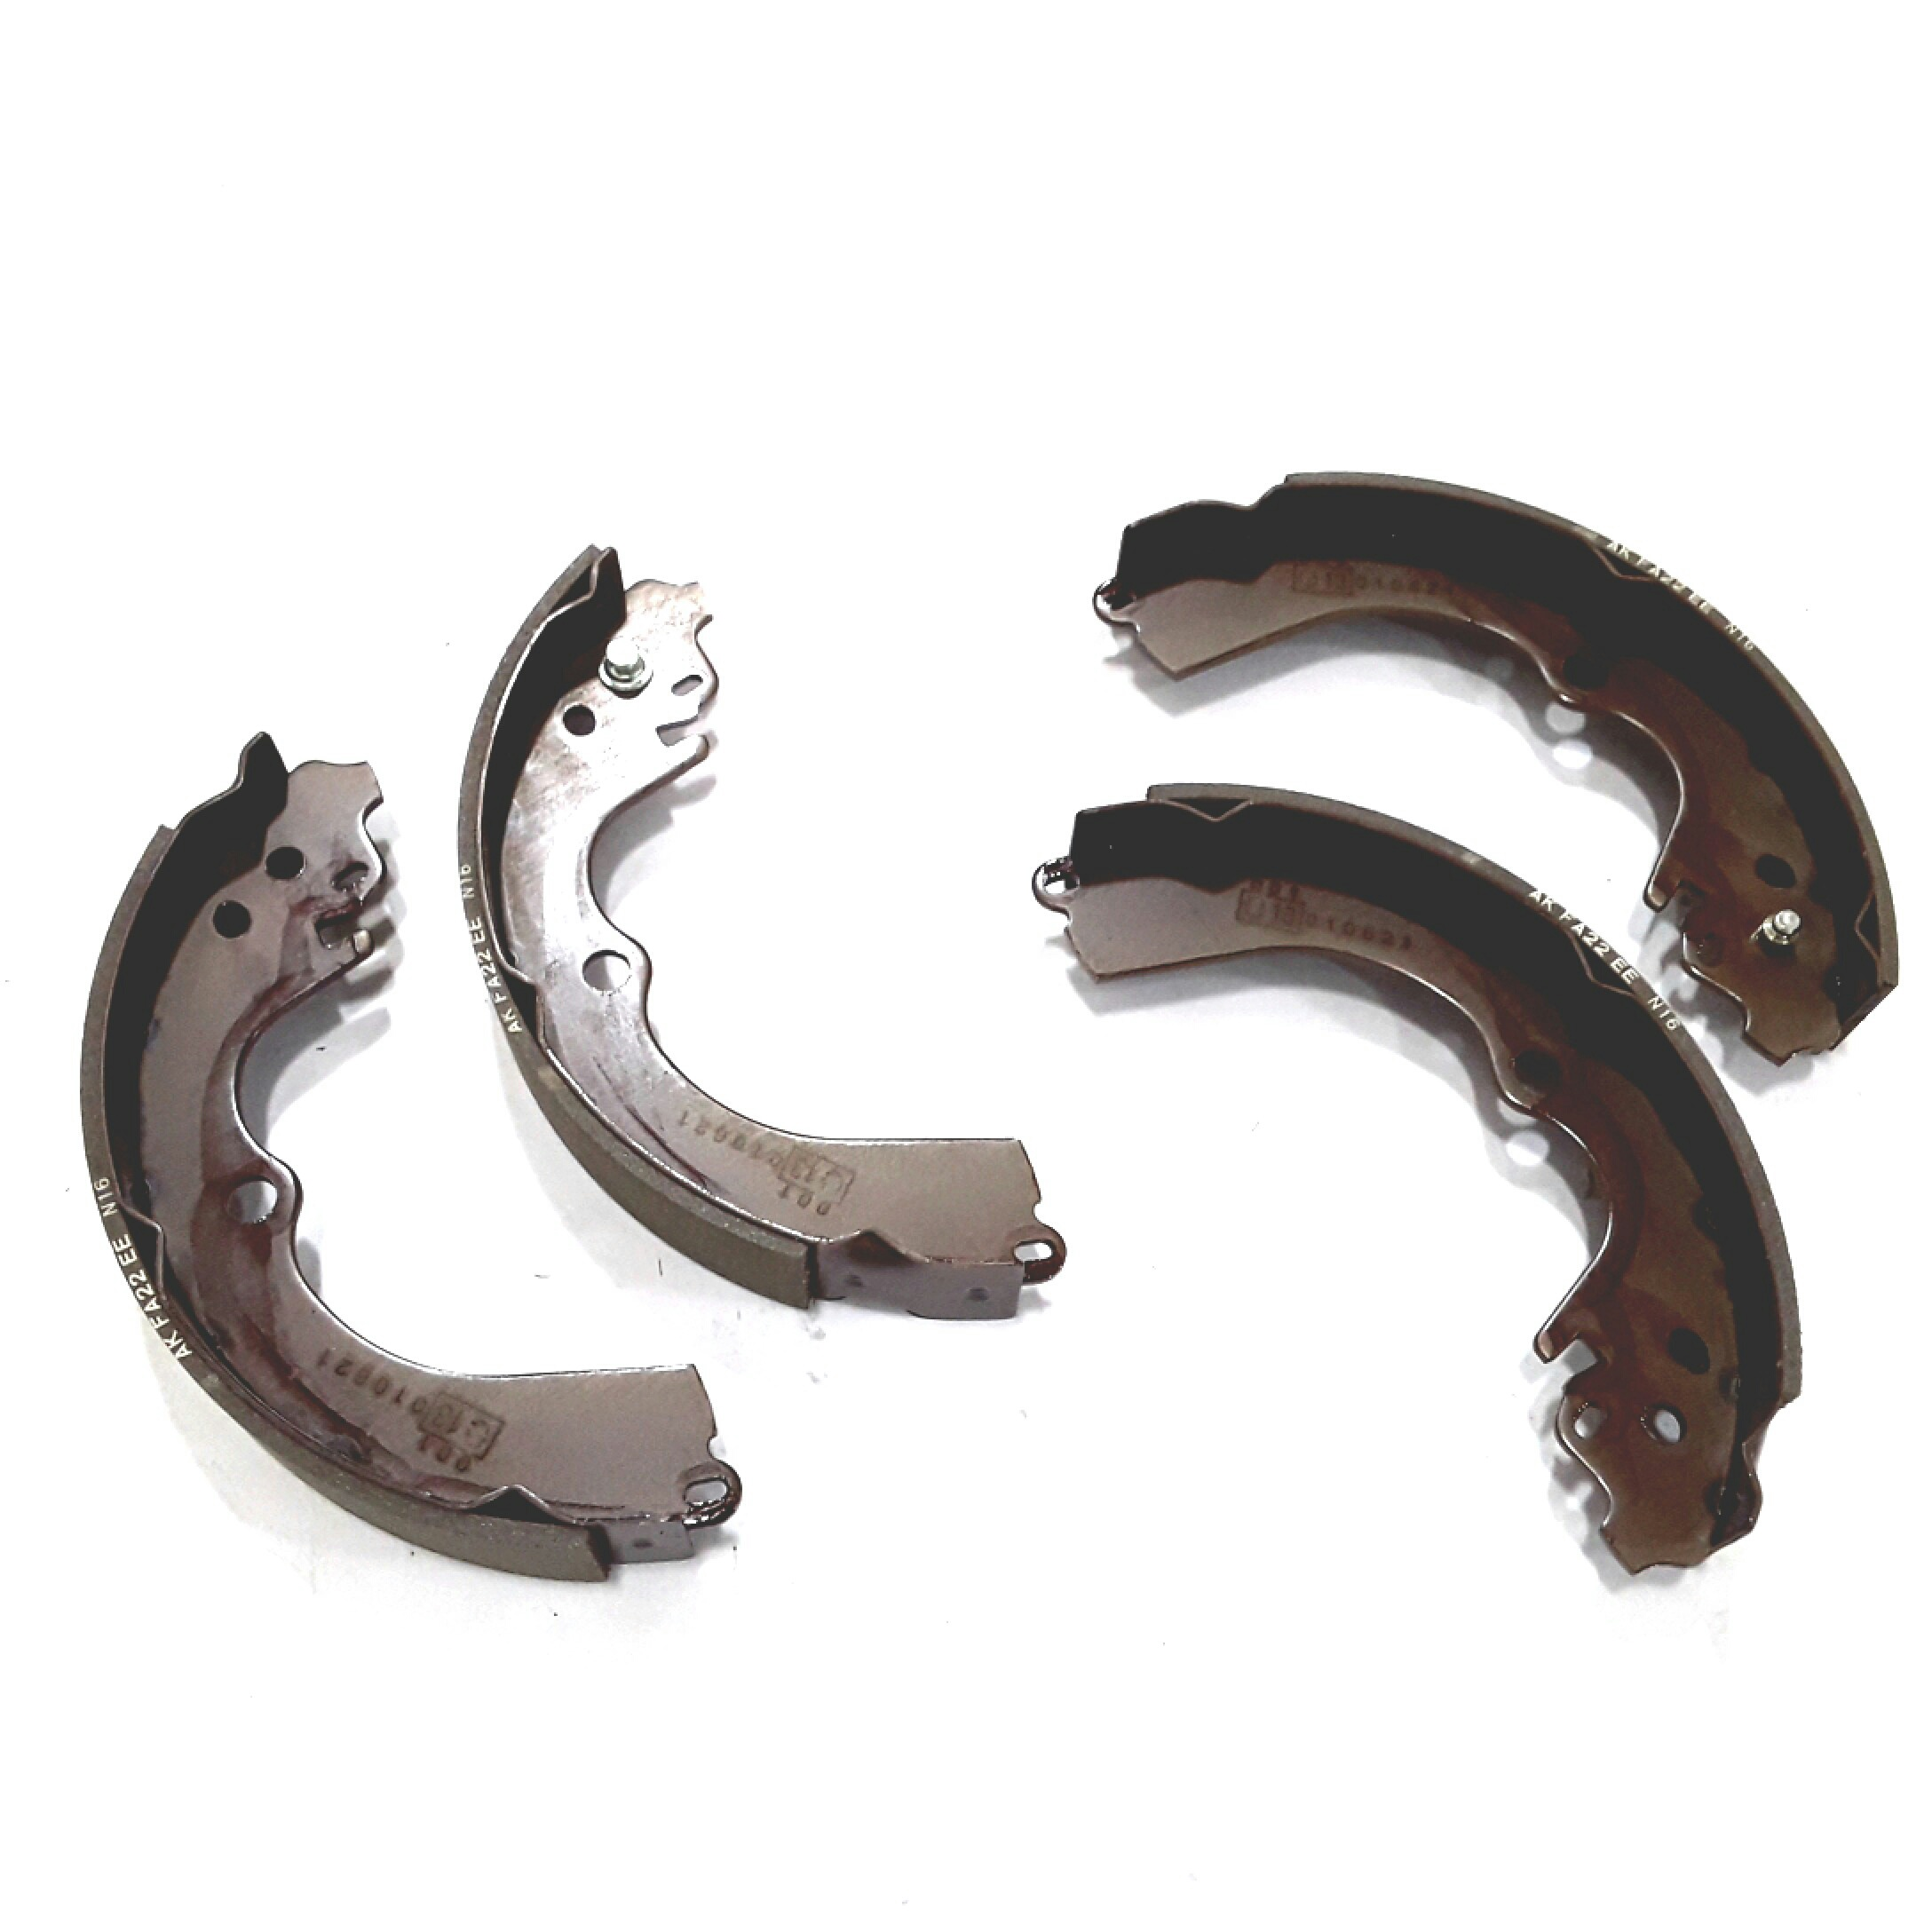 Byers Airport Subaru >> Subaru STI 2.5L TURBO 6MT 4WD WAGON Brake shoe repair kit ...